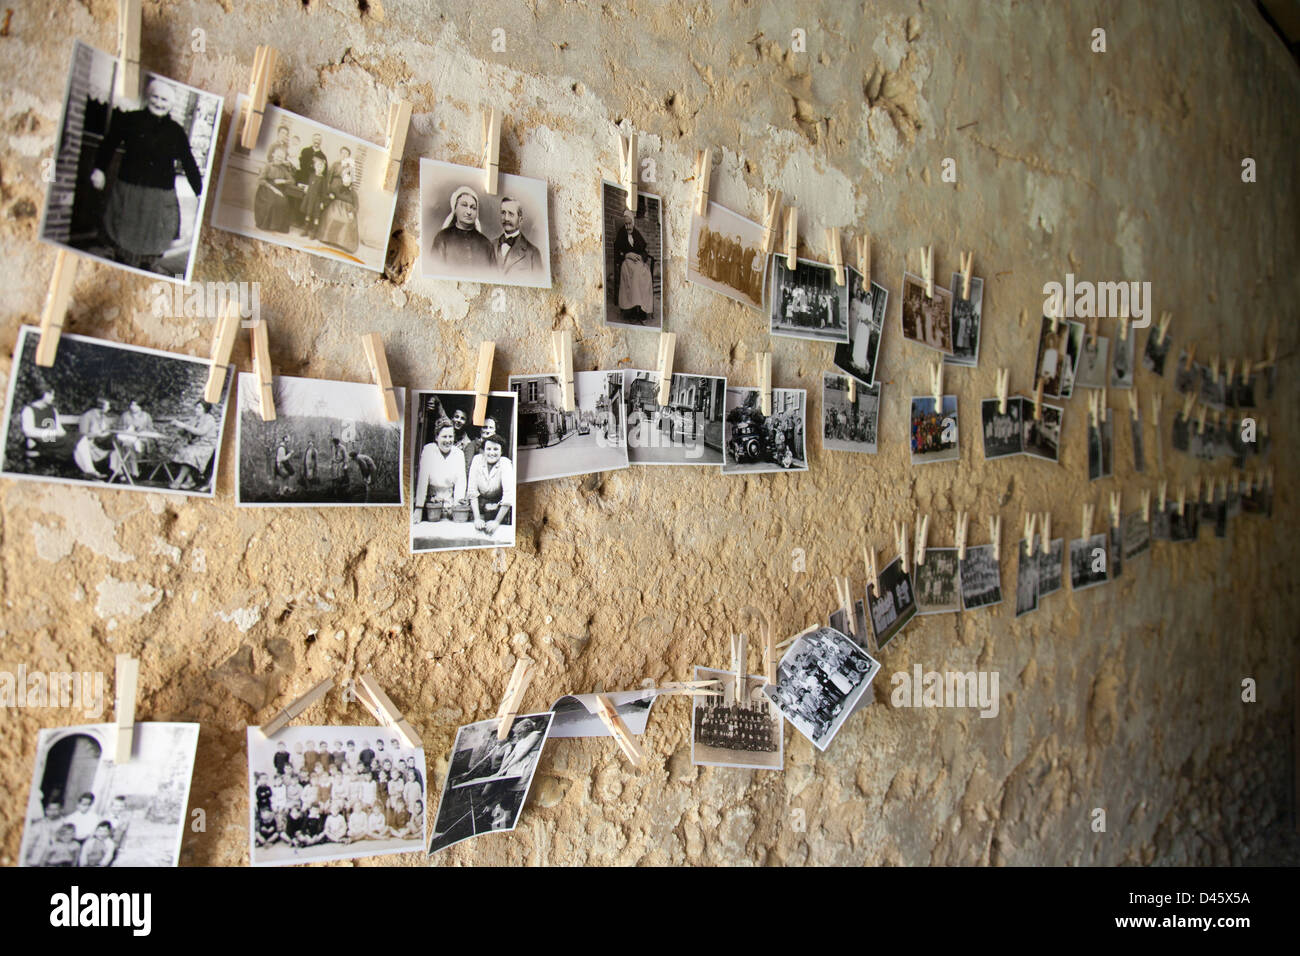 Old black and white family photographs pegged onto string as part of an art installation. - Stock Image